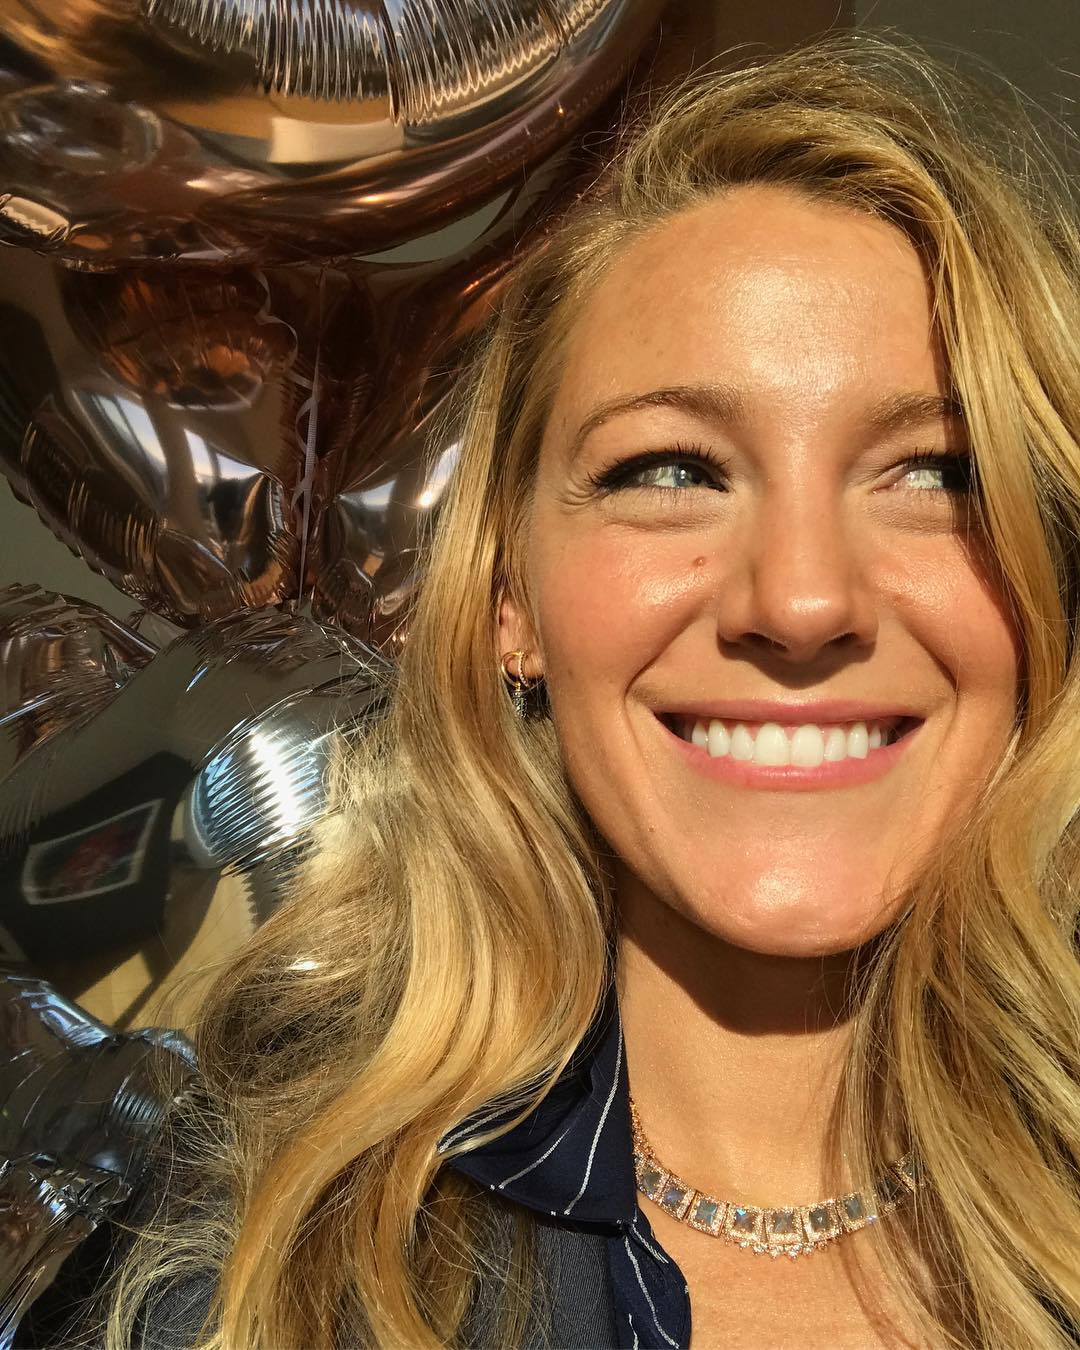 Prime Day Prewrite: Blake Lively's go-to mascara on sale